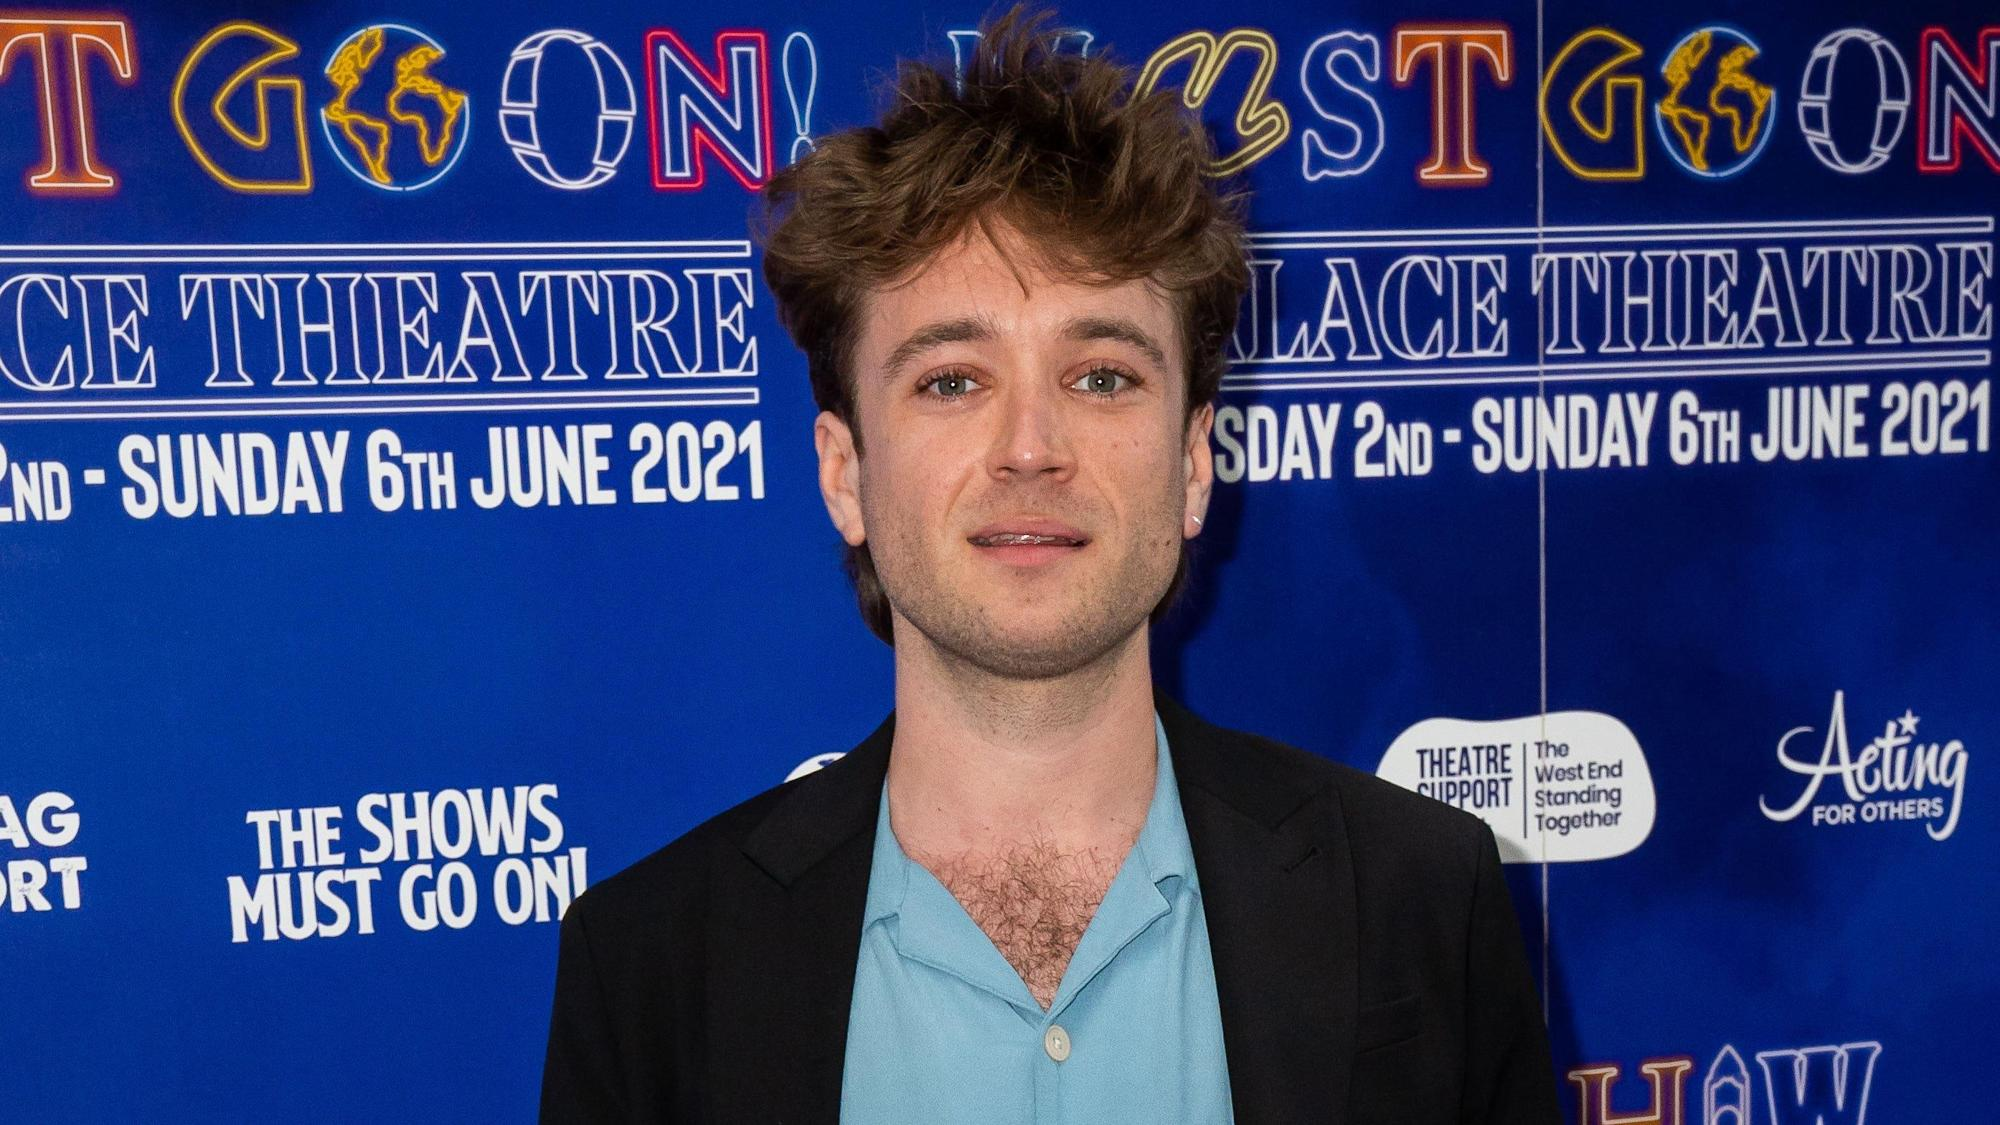 West End star Olly Dobson predicts theatre will return stronger than ever